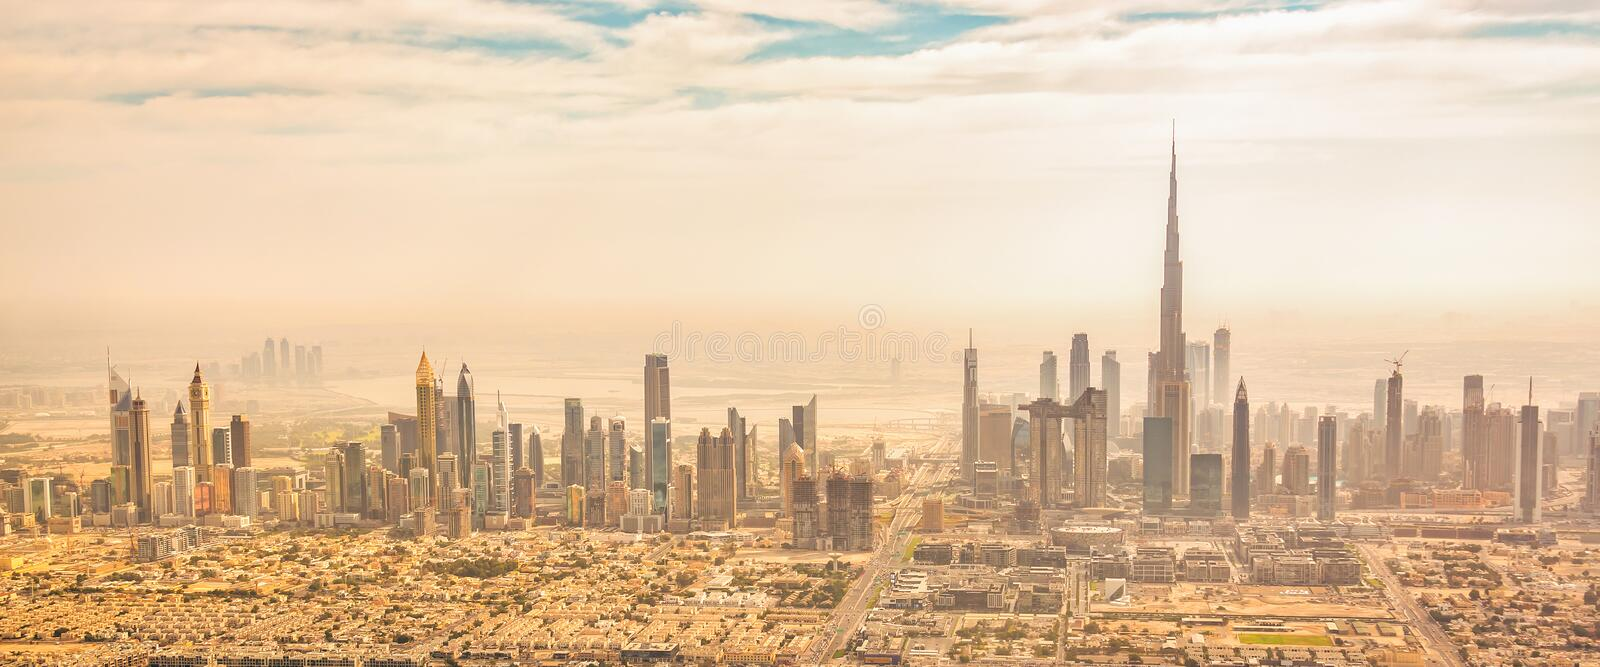 Panoramic aerial view of Dubai skyline, UAE stock photos